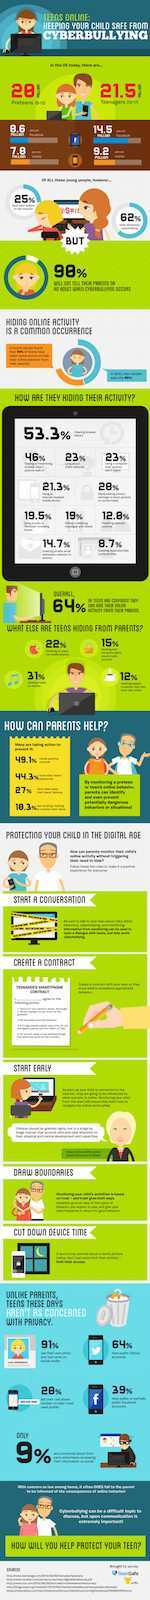 Infographic on keeping children safe from cyberbullying